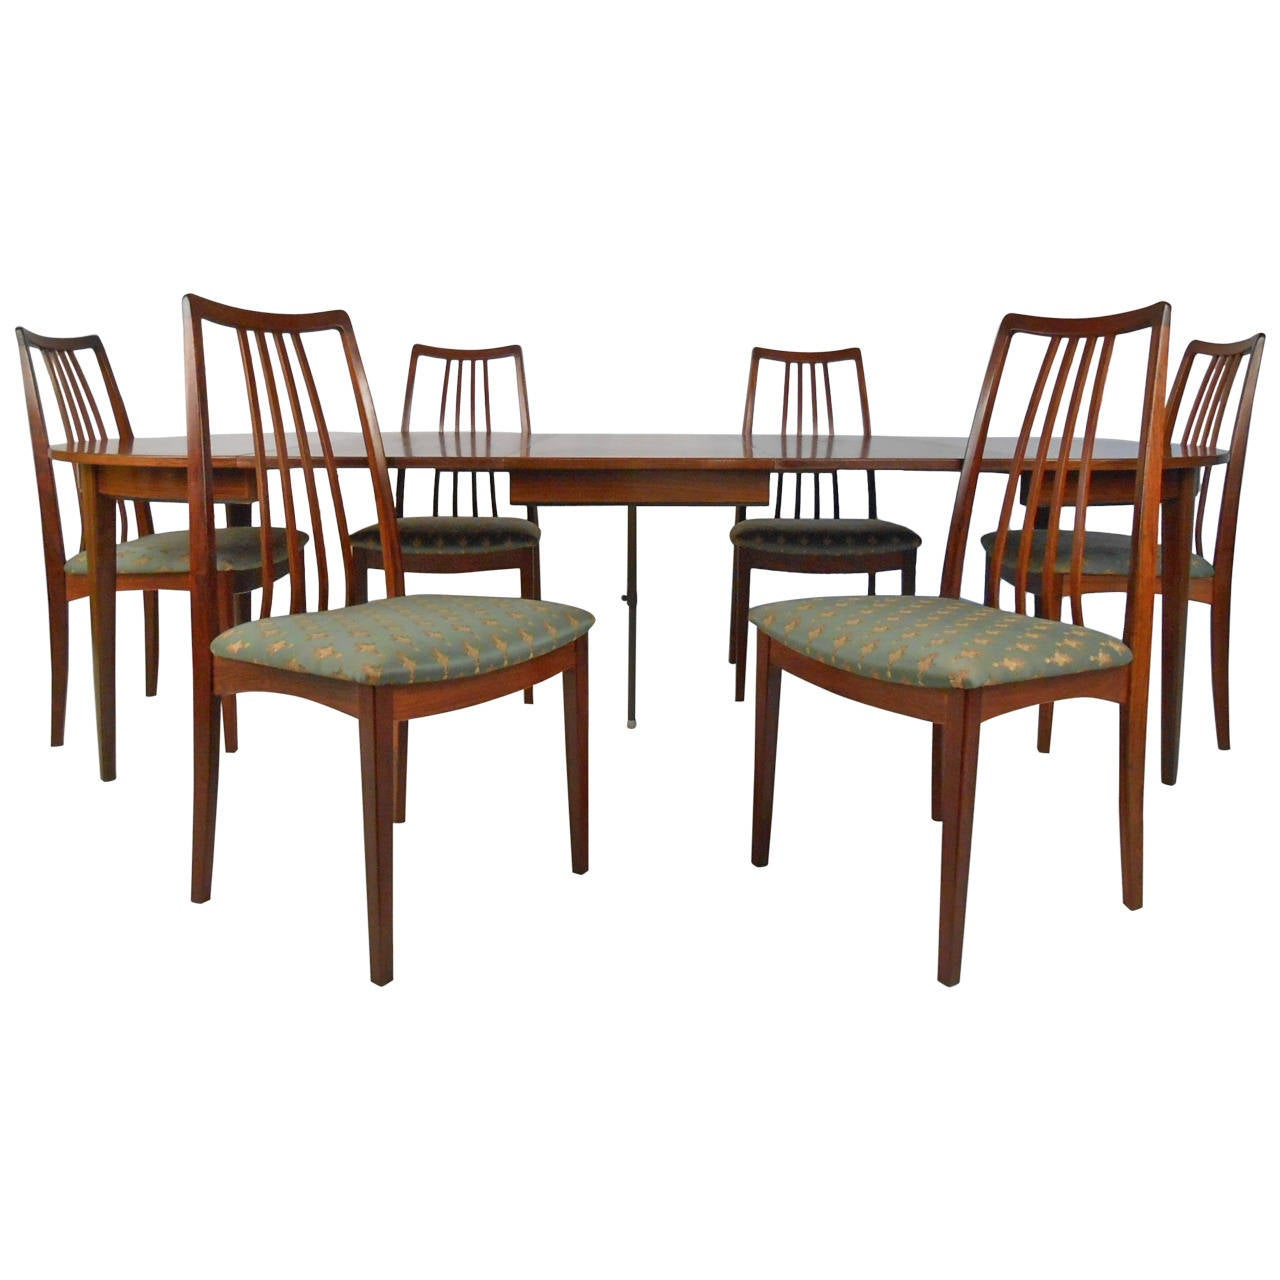 Omann Jun Rosewood Dining Table and Chairs, c. 1959